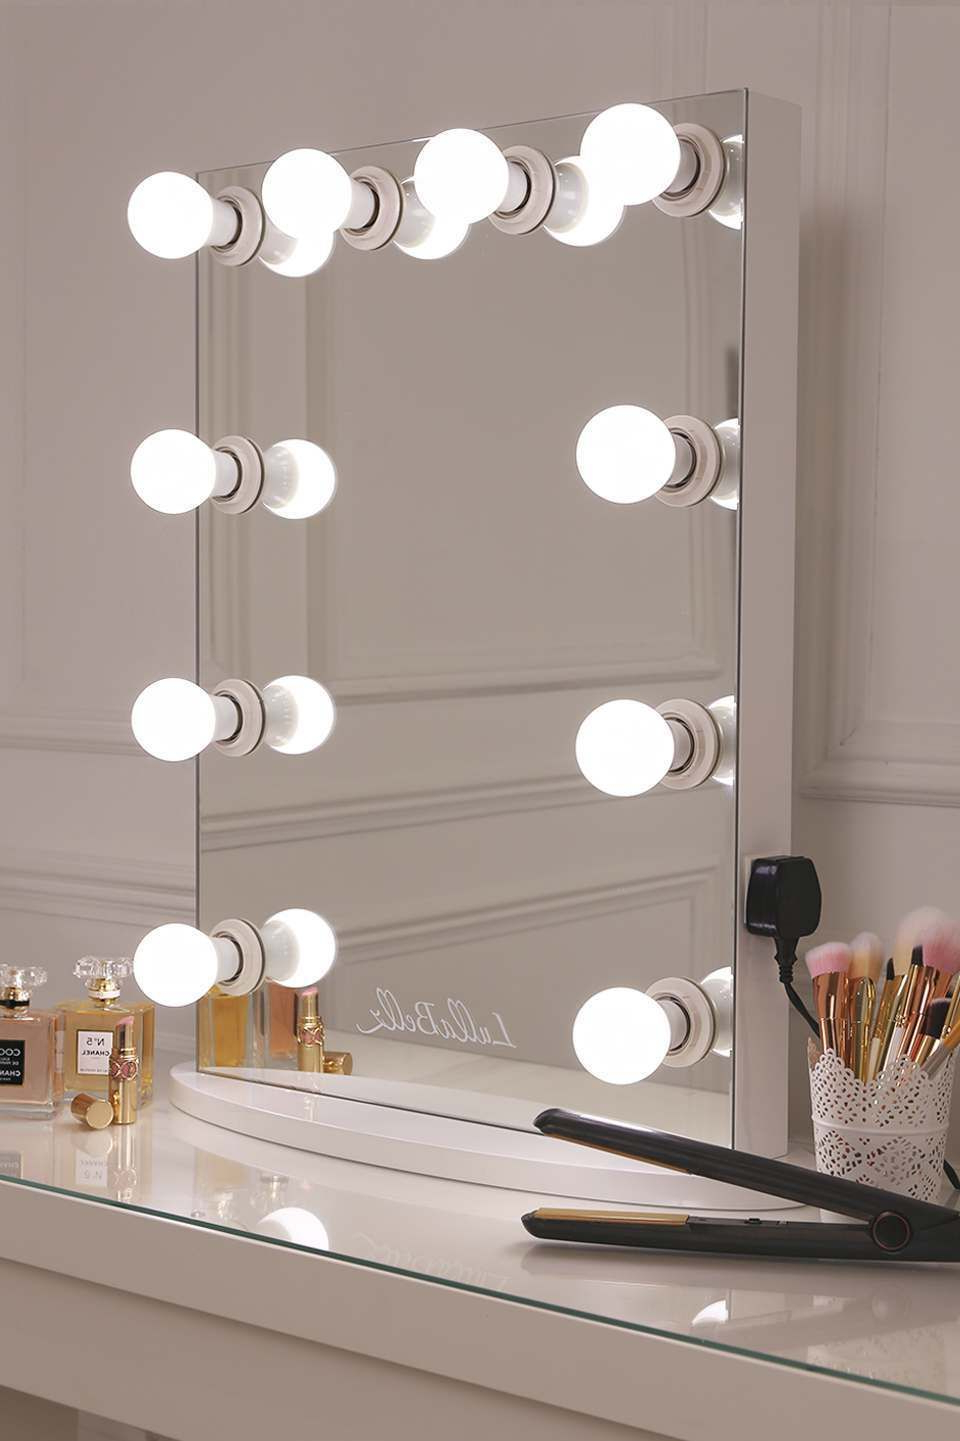 Wall Mirrors With Light Bulbs Pertaining To Current Simplistic Crisp White Finish Embedded Hollywood Light Up Mirror (View 2 of 20)